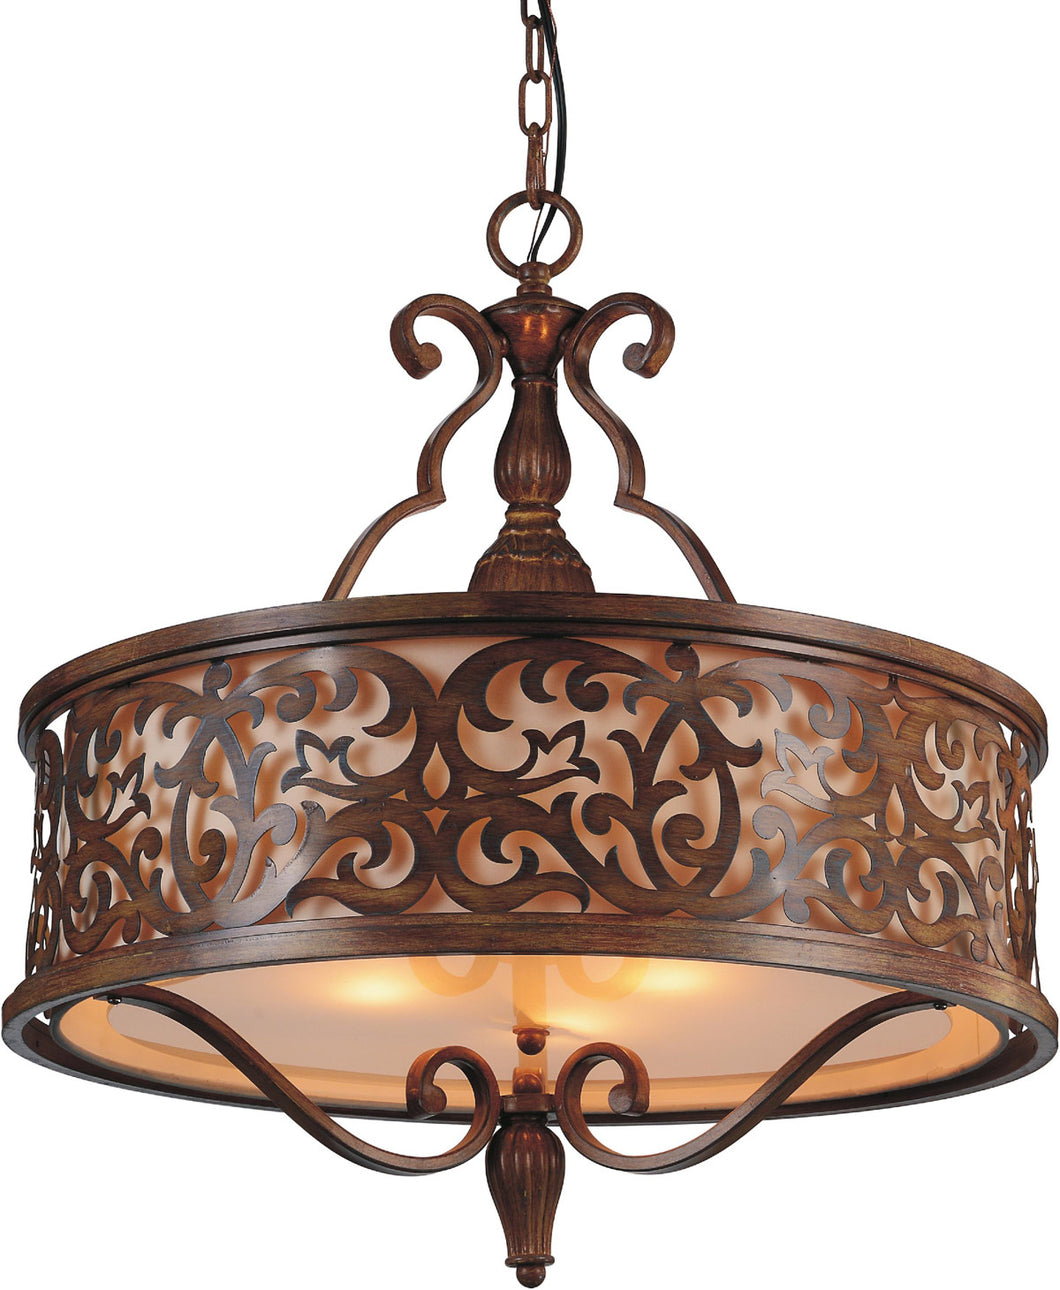 5 Light Drum Shade Chandelier with Brushed Chocolate finish